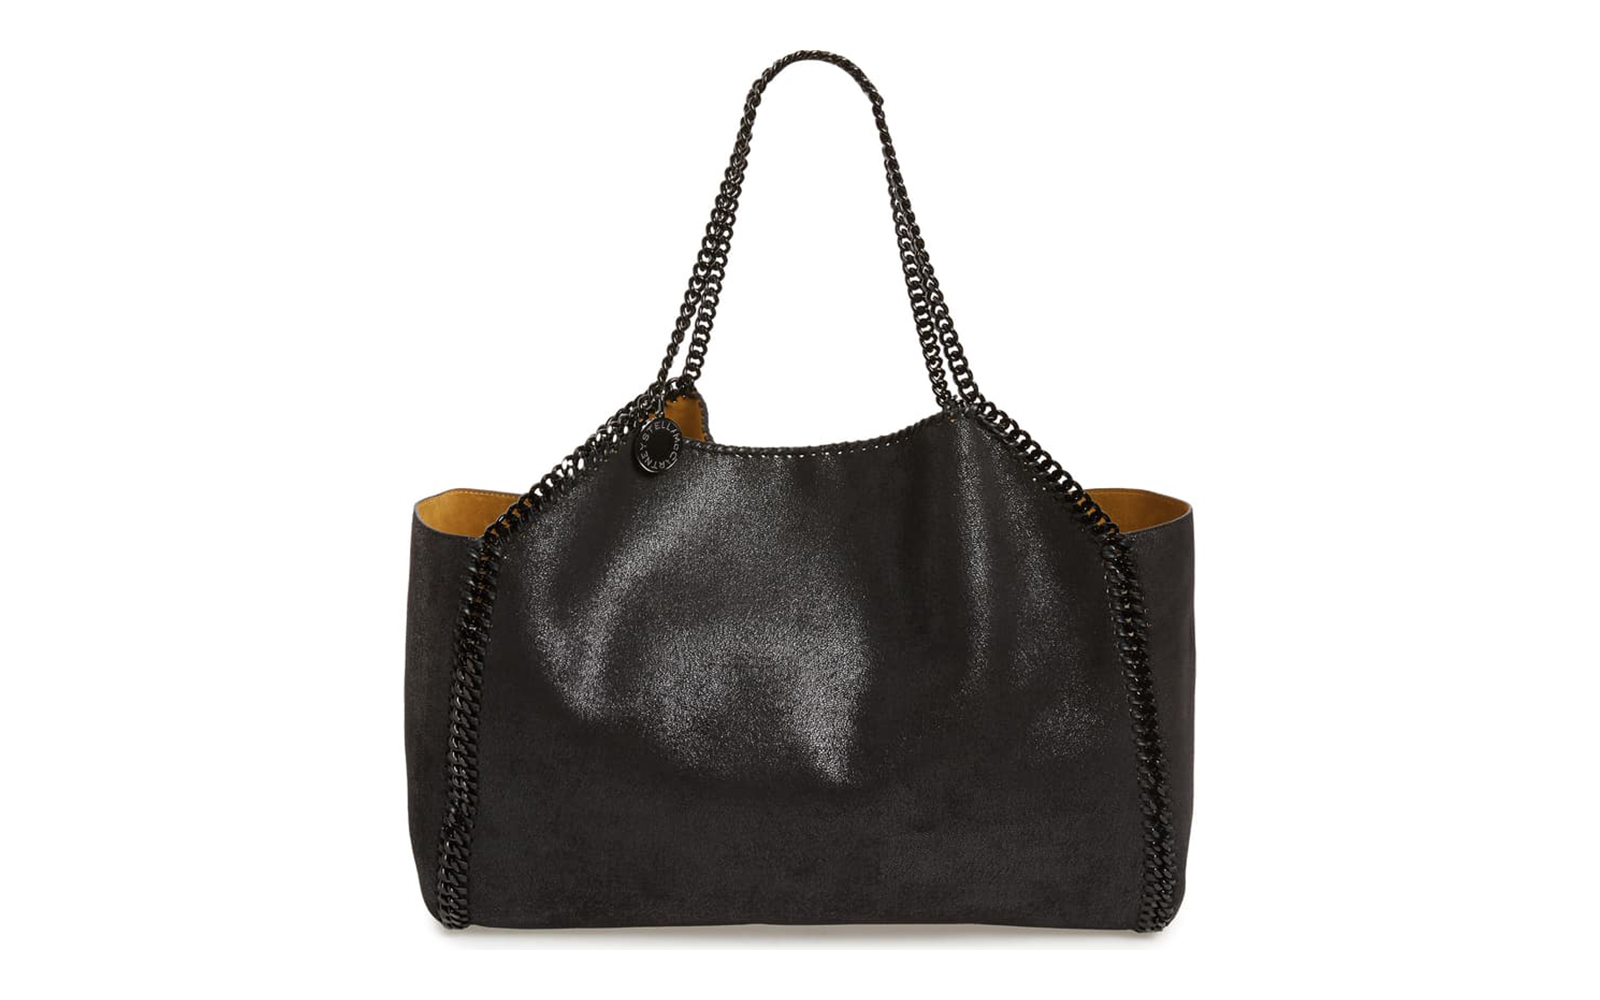 Reversible Faux Leather Tote STELLA MCCARTNEY